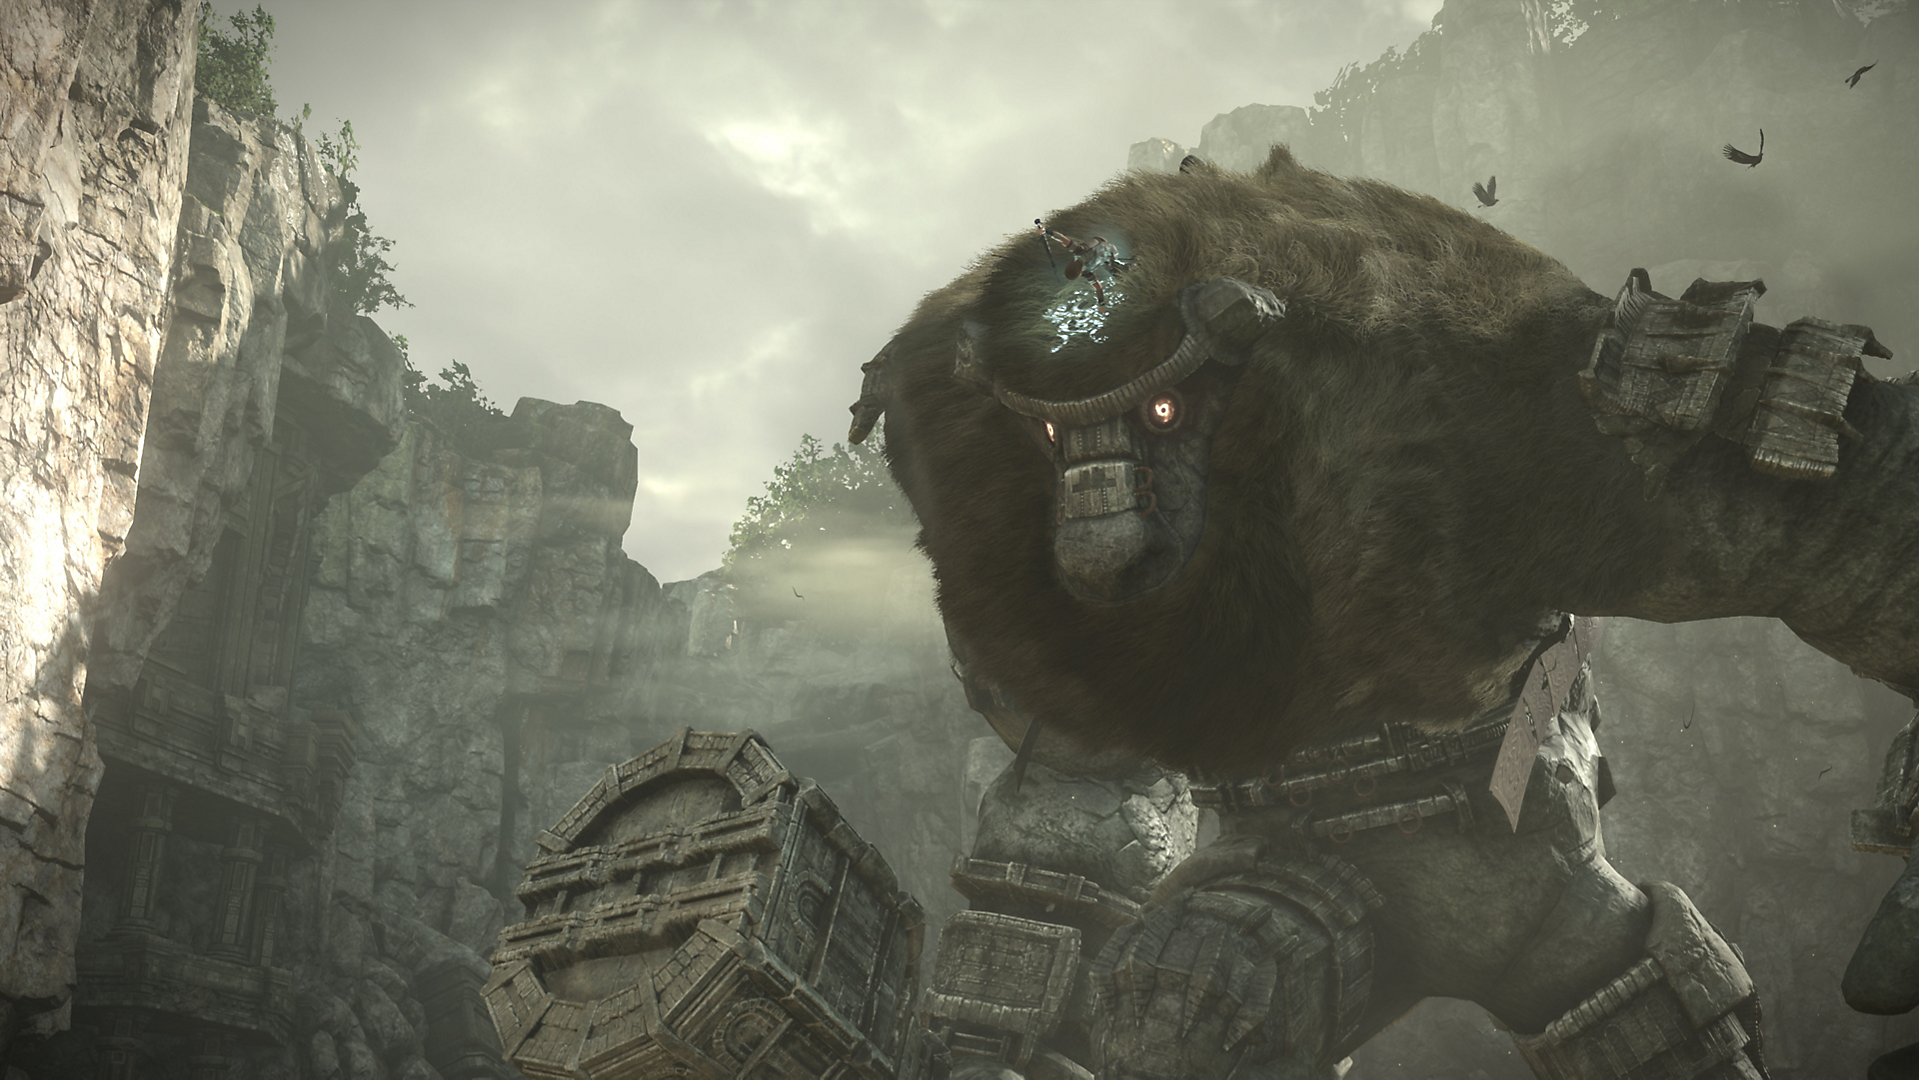 shadow-of-the-colossus-screen-01-ps4-us-08sep17.png